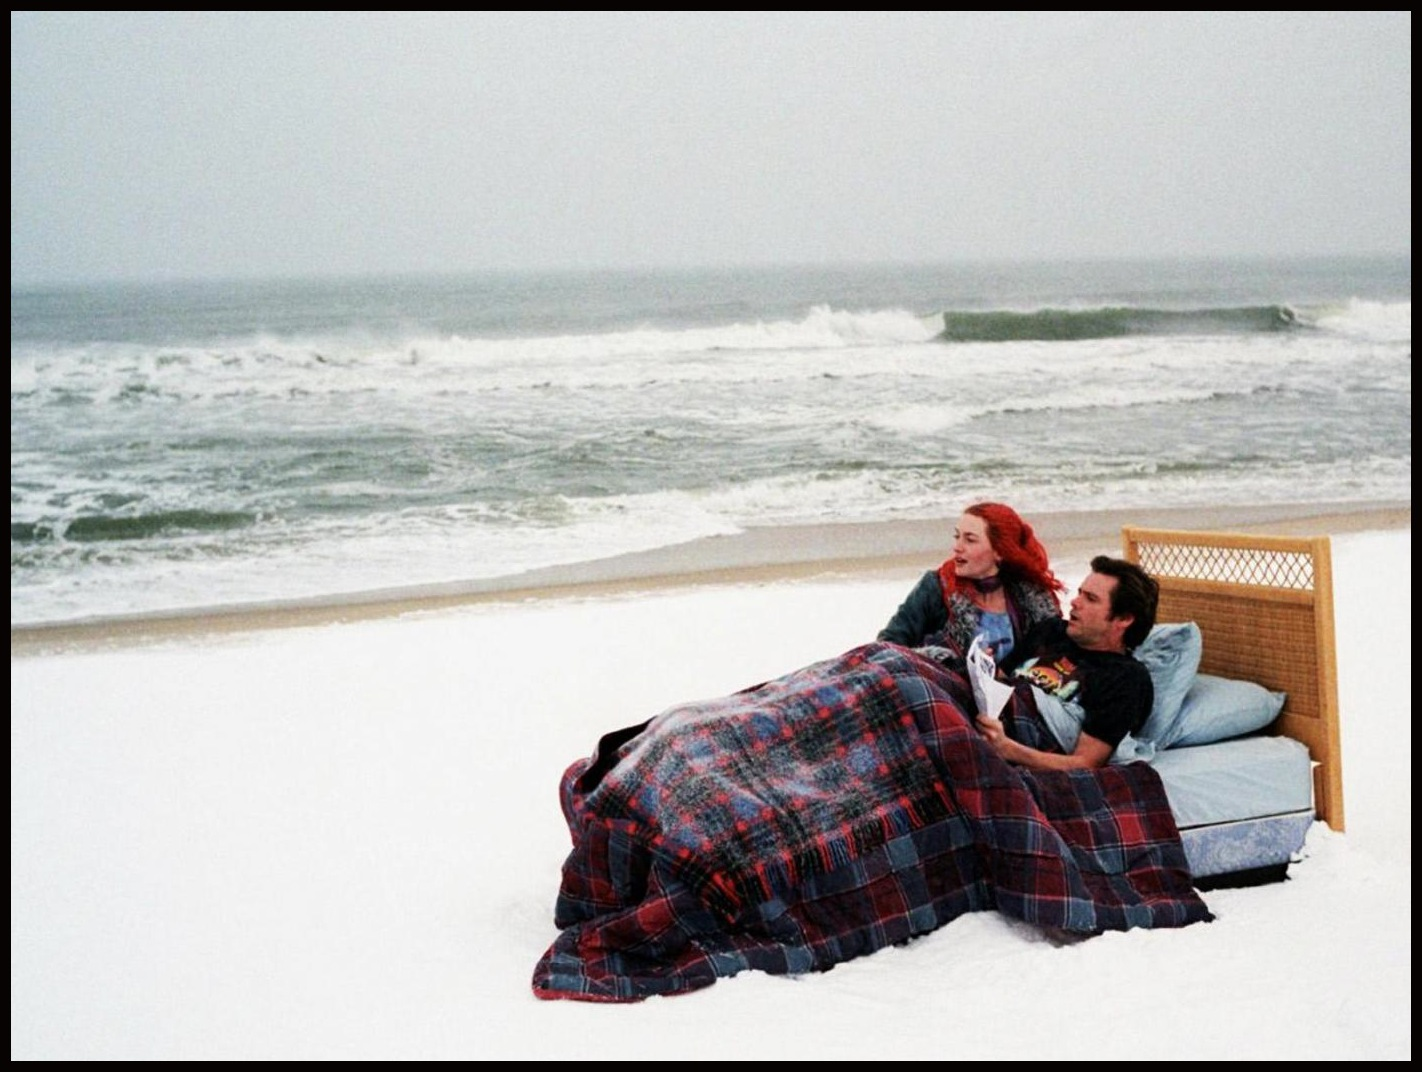 eternal sunshine of the spotless mind mise en scene This month we look at eternal sunshine of the spotless mind (2004), written by charlie kaufman and directed by michel gondry (spoiler alert: this clip contains the last scene) the film is about.